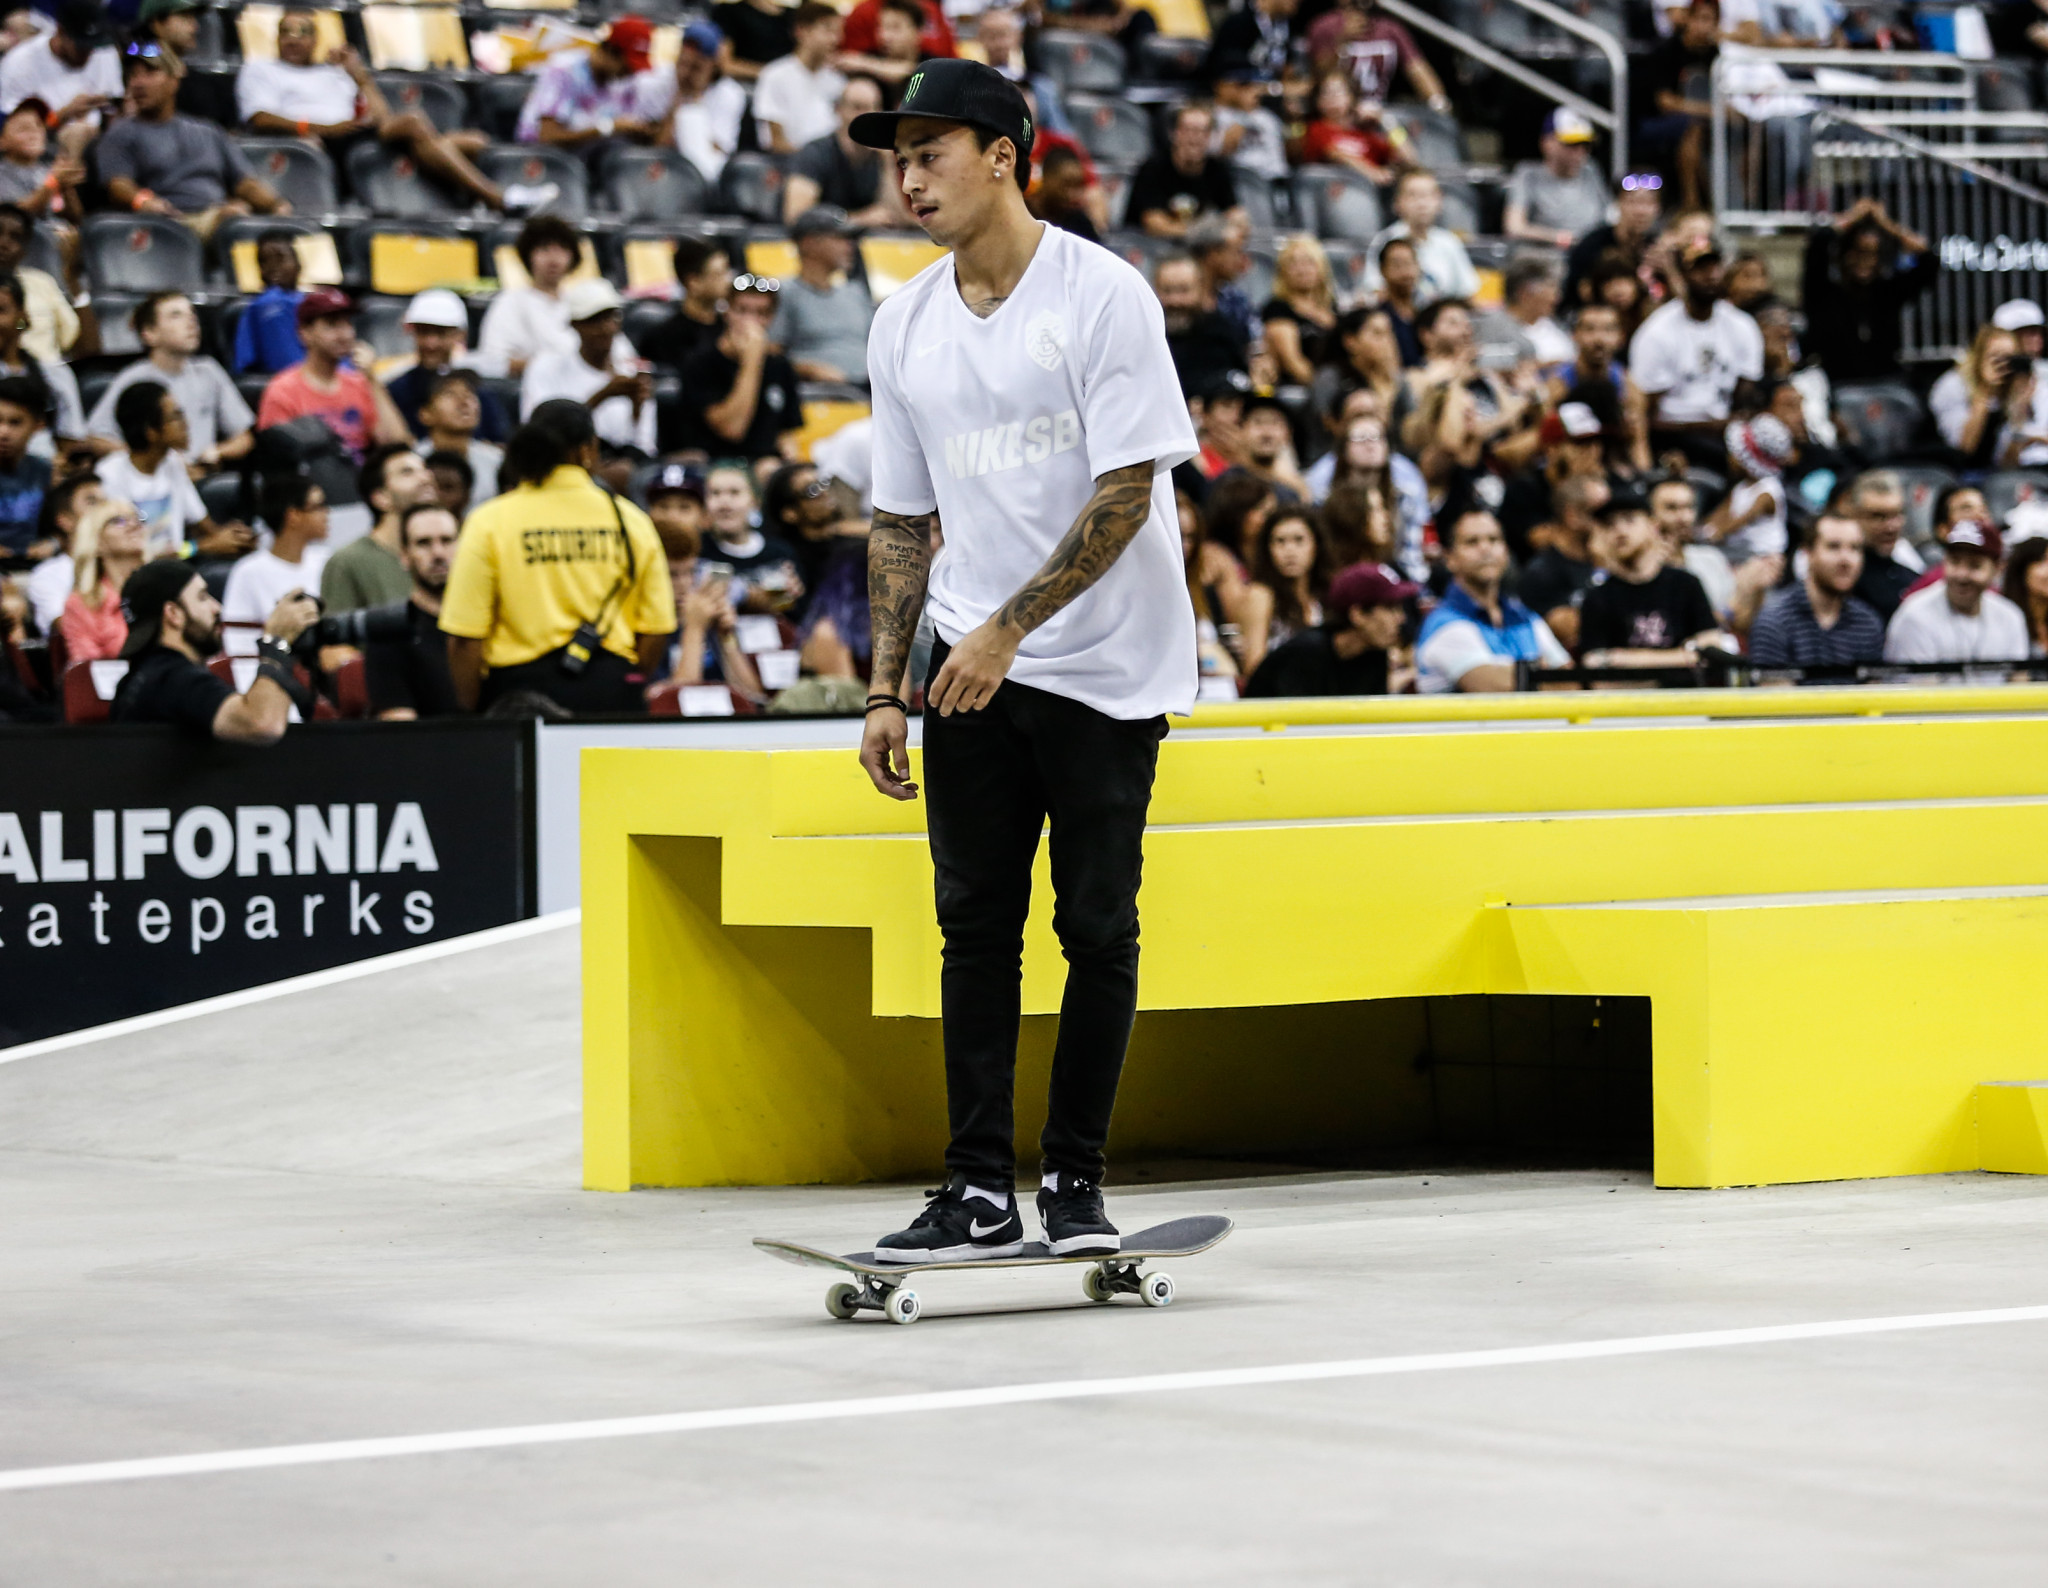 """World champion Huston claims skateboarding's Olympic debut at Tokyo 2020 has been a """"long time coming"""""""